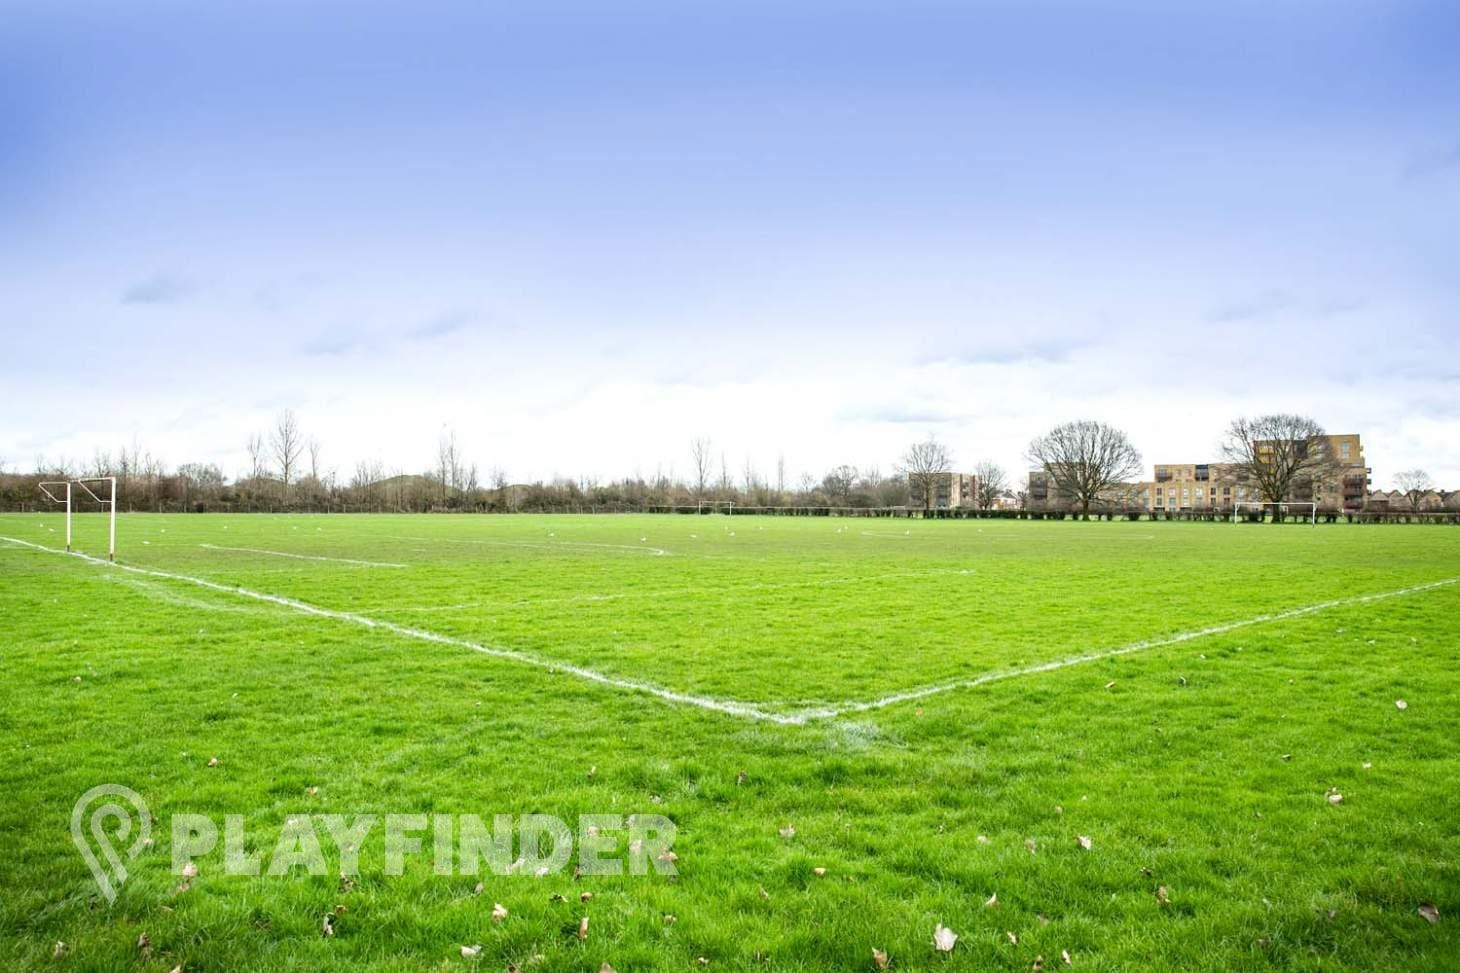 Rectory Park 11 a side | Grass football pitch